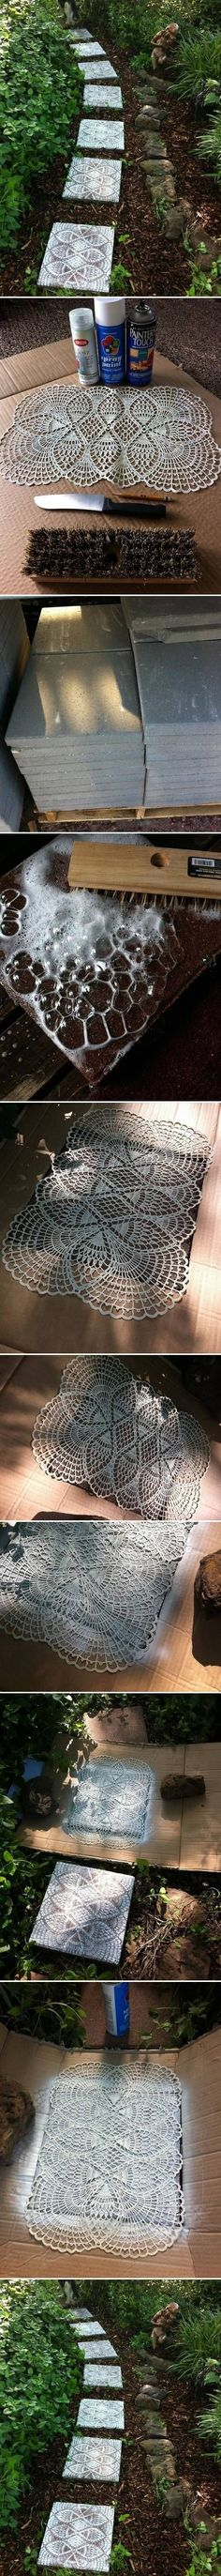 DIY Lace Like Stepping Stones: